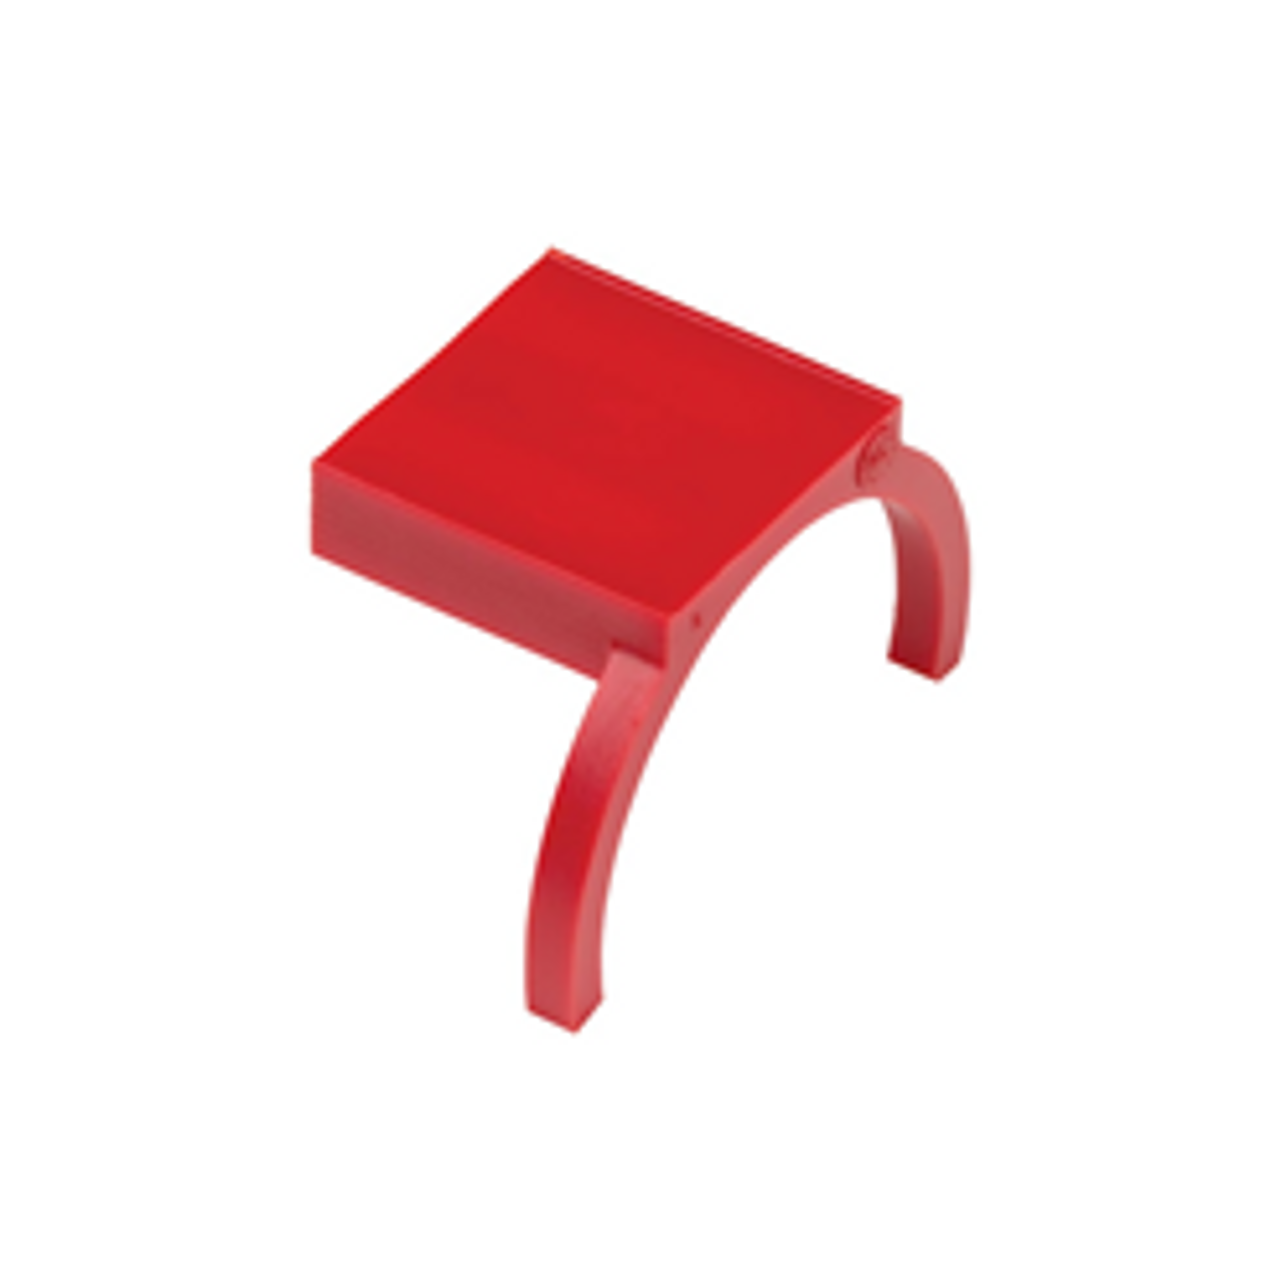 Manifold Red Label Plate -3586-18